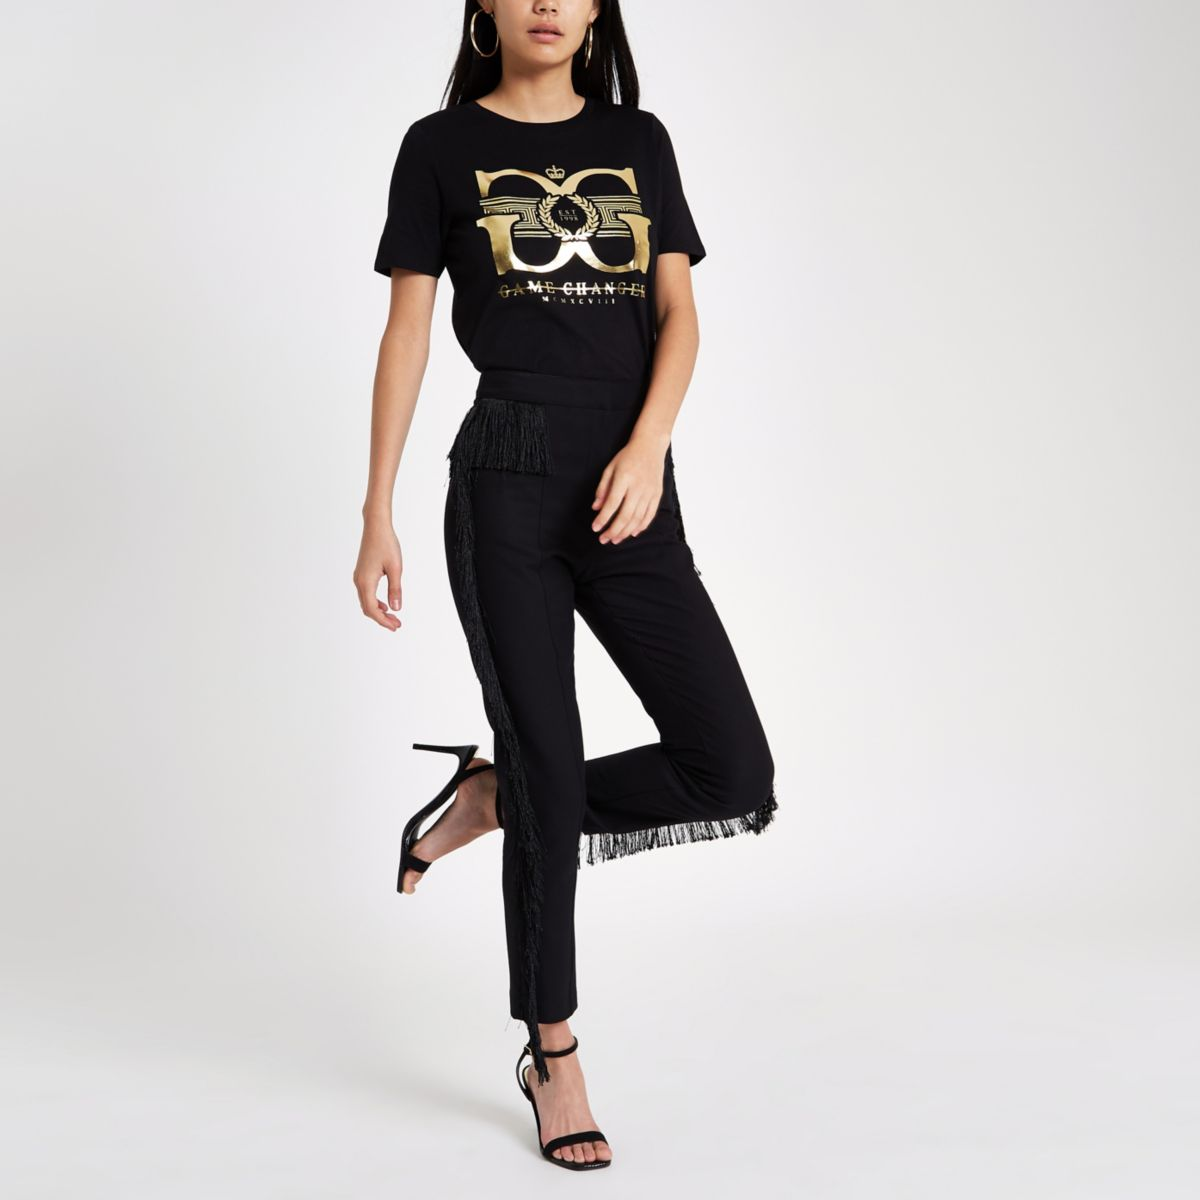 Black 'game changer' foil print T-shirt